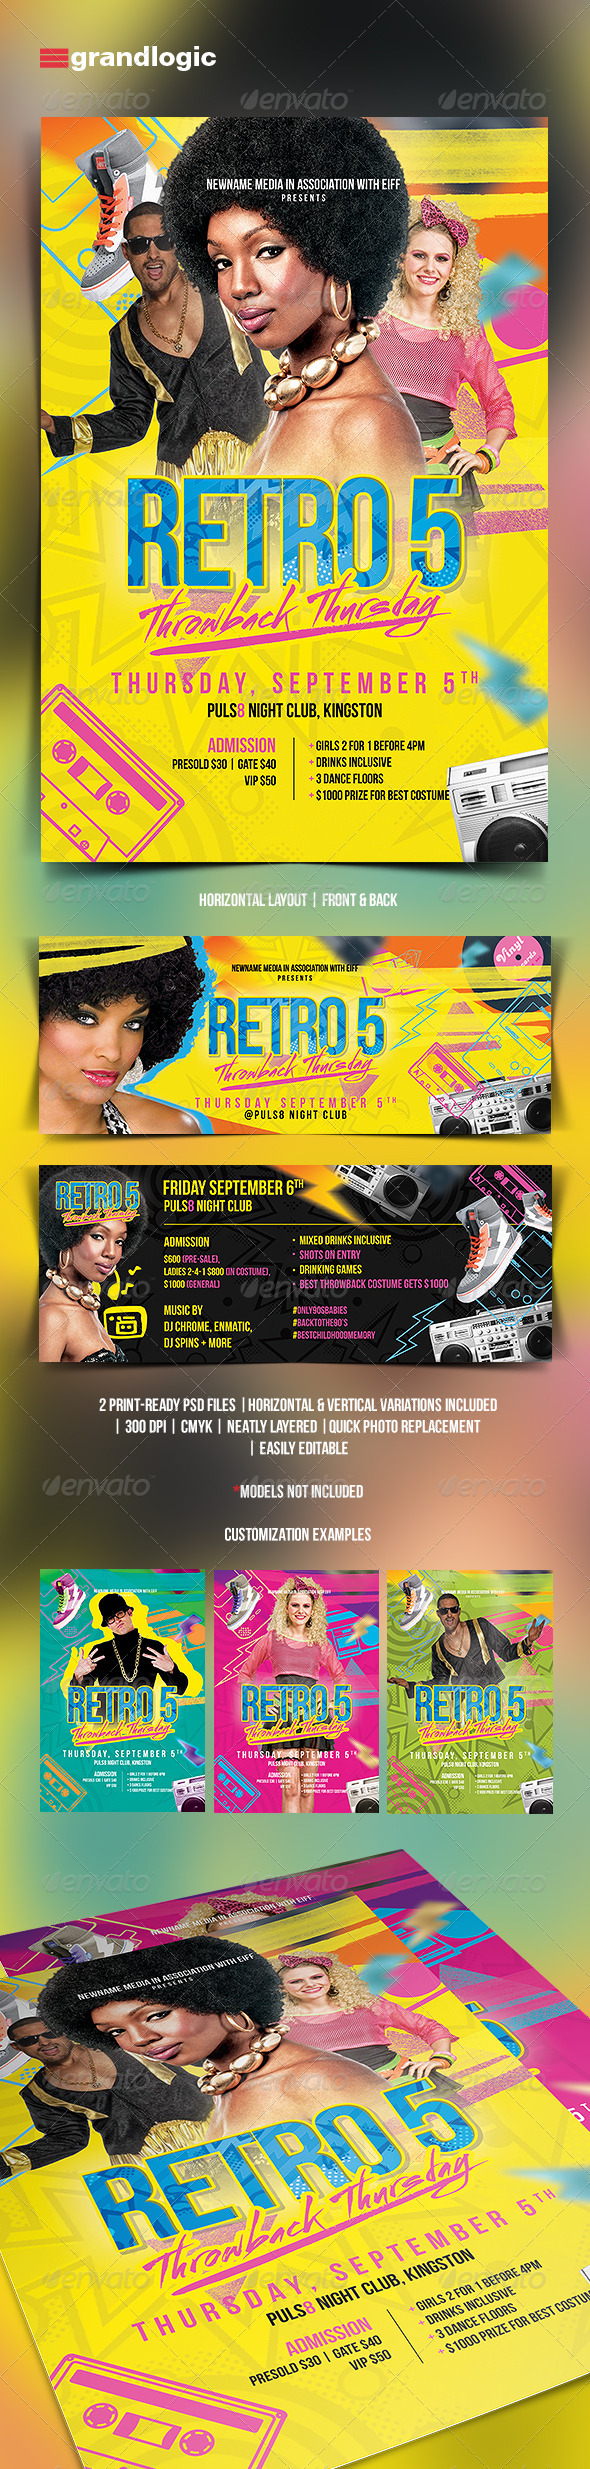 GraphicRiver 80 s Throwback Party Flyer 5440537